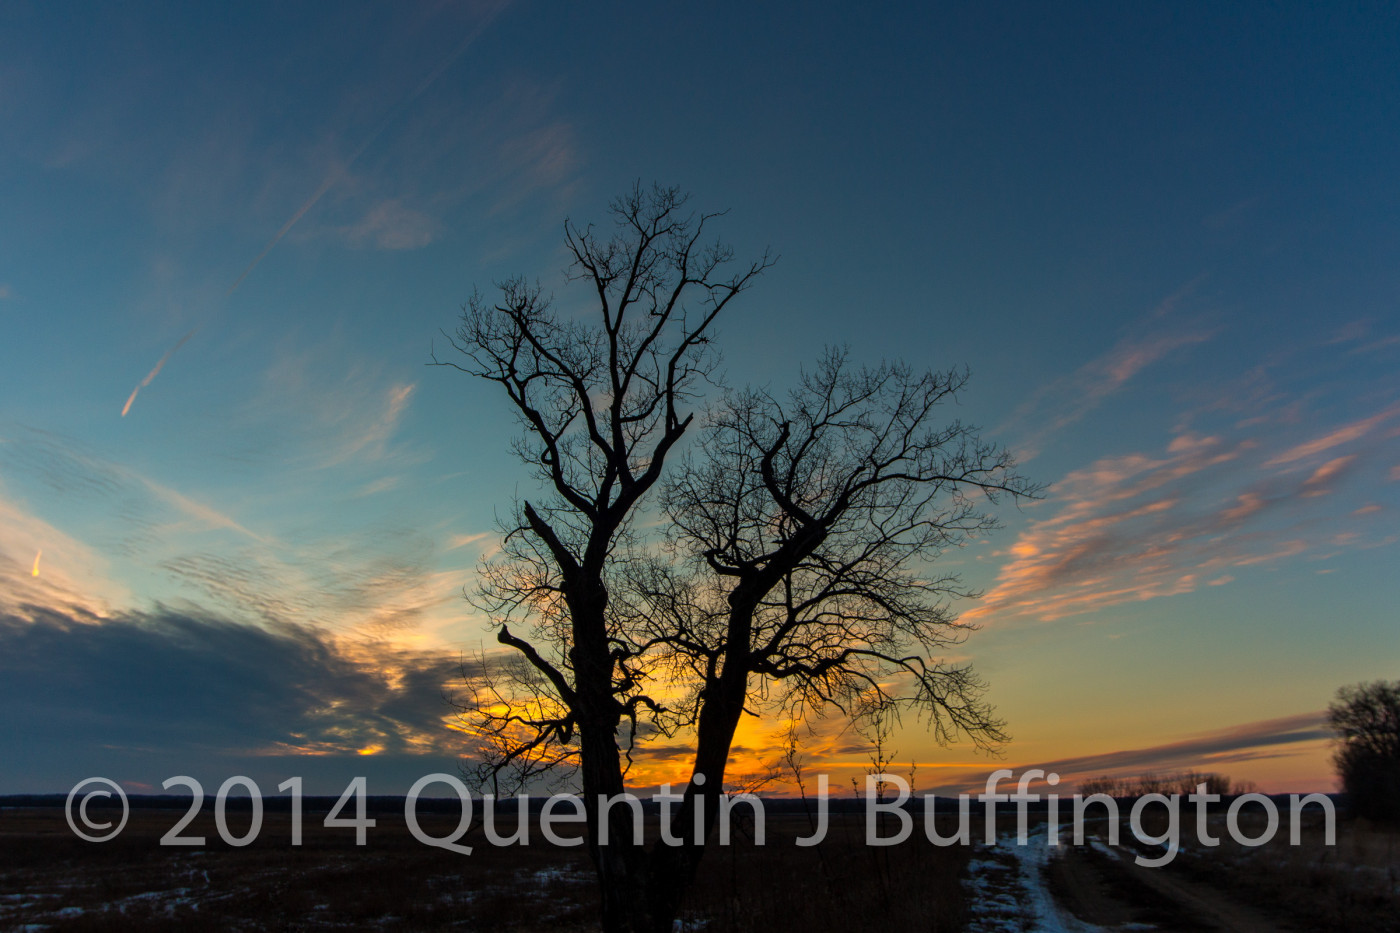 A pair of trees captured just at the moment the sun slipped below the horizon giving a warm glow.